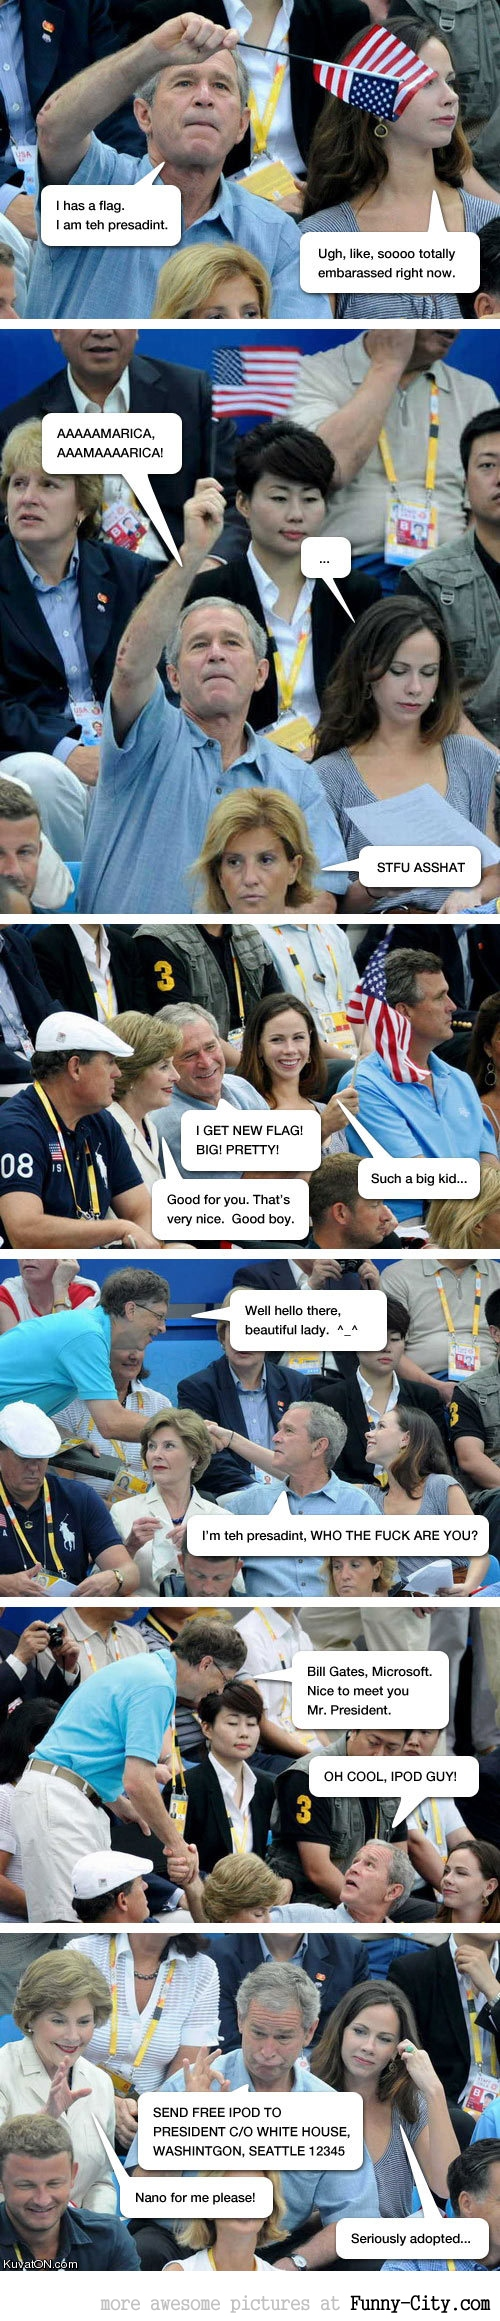 Bush at the games